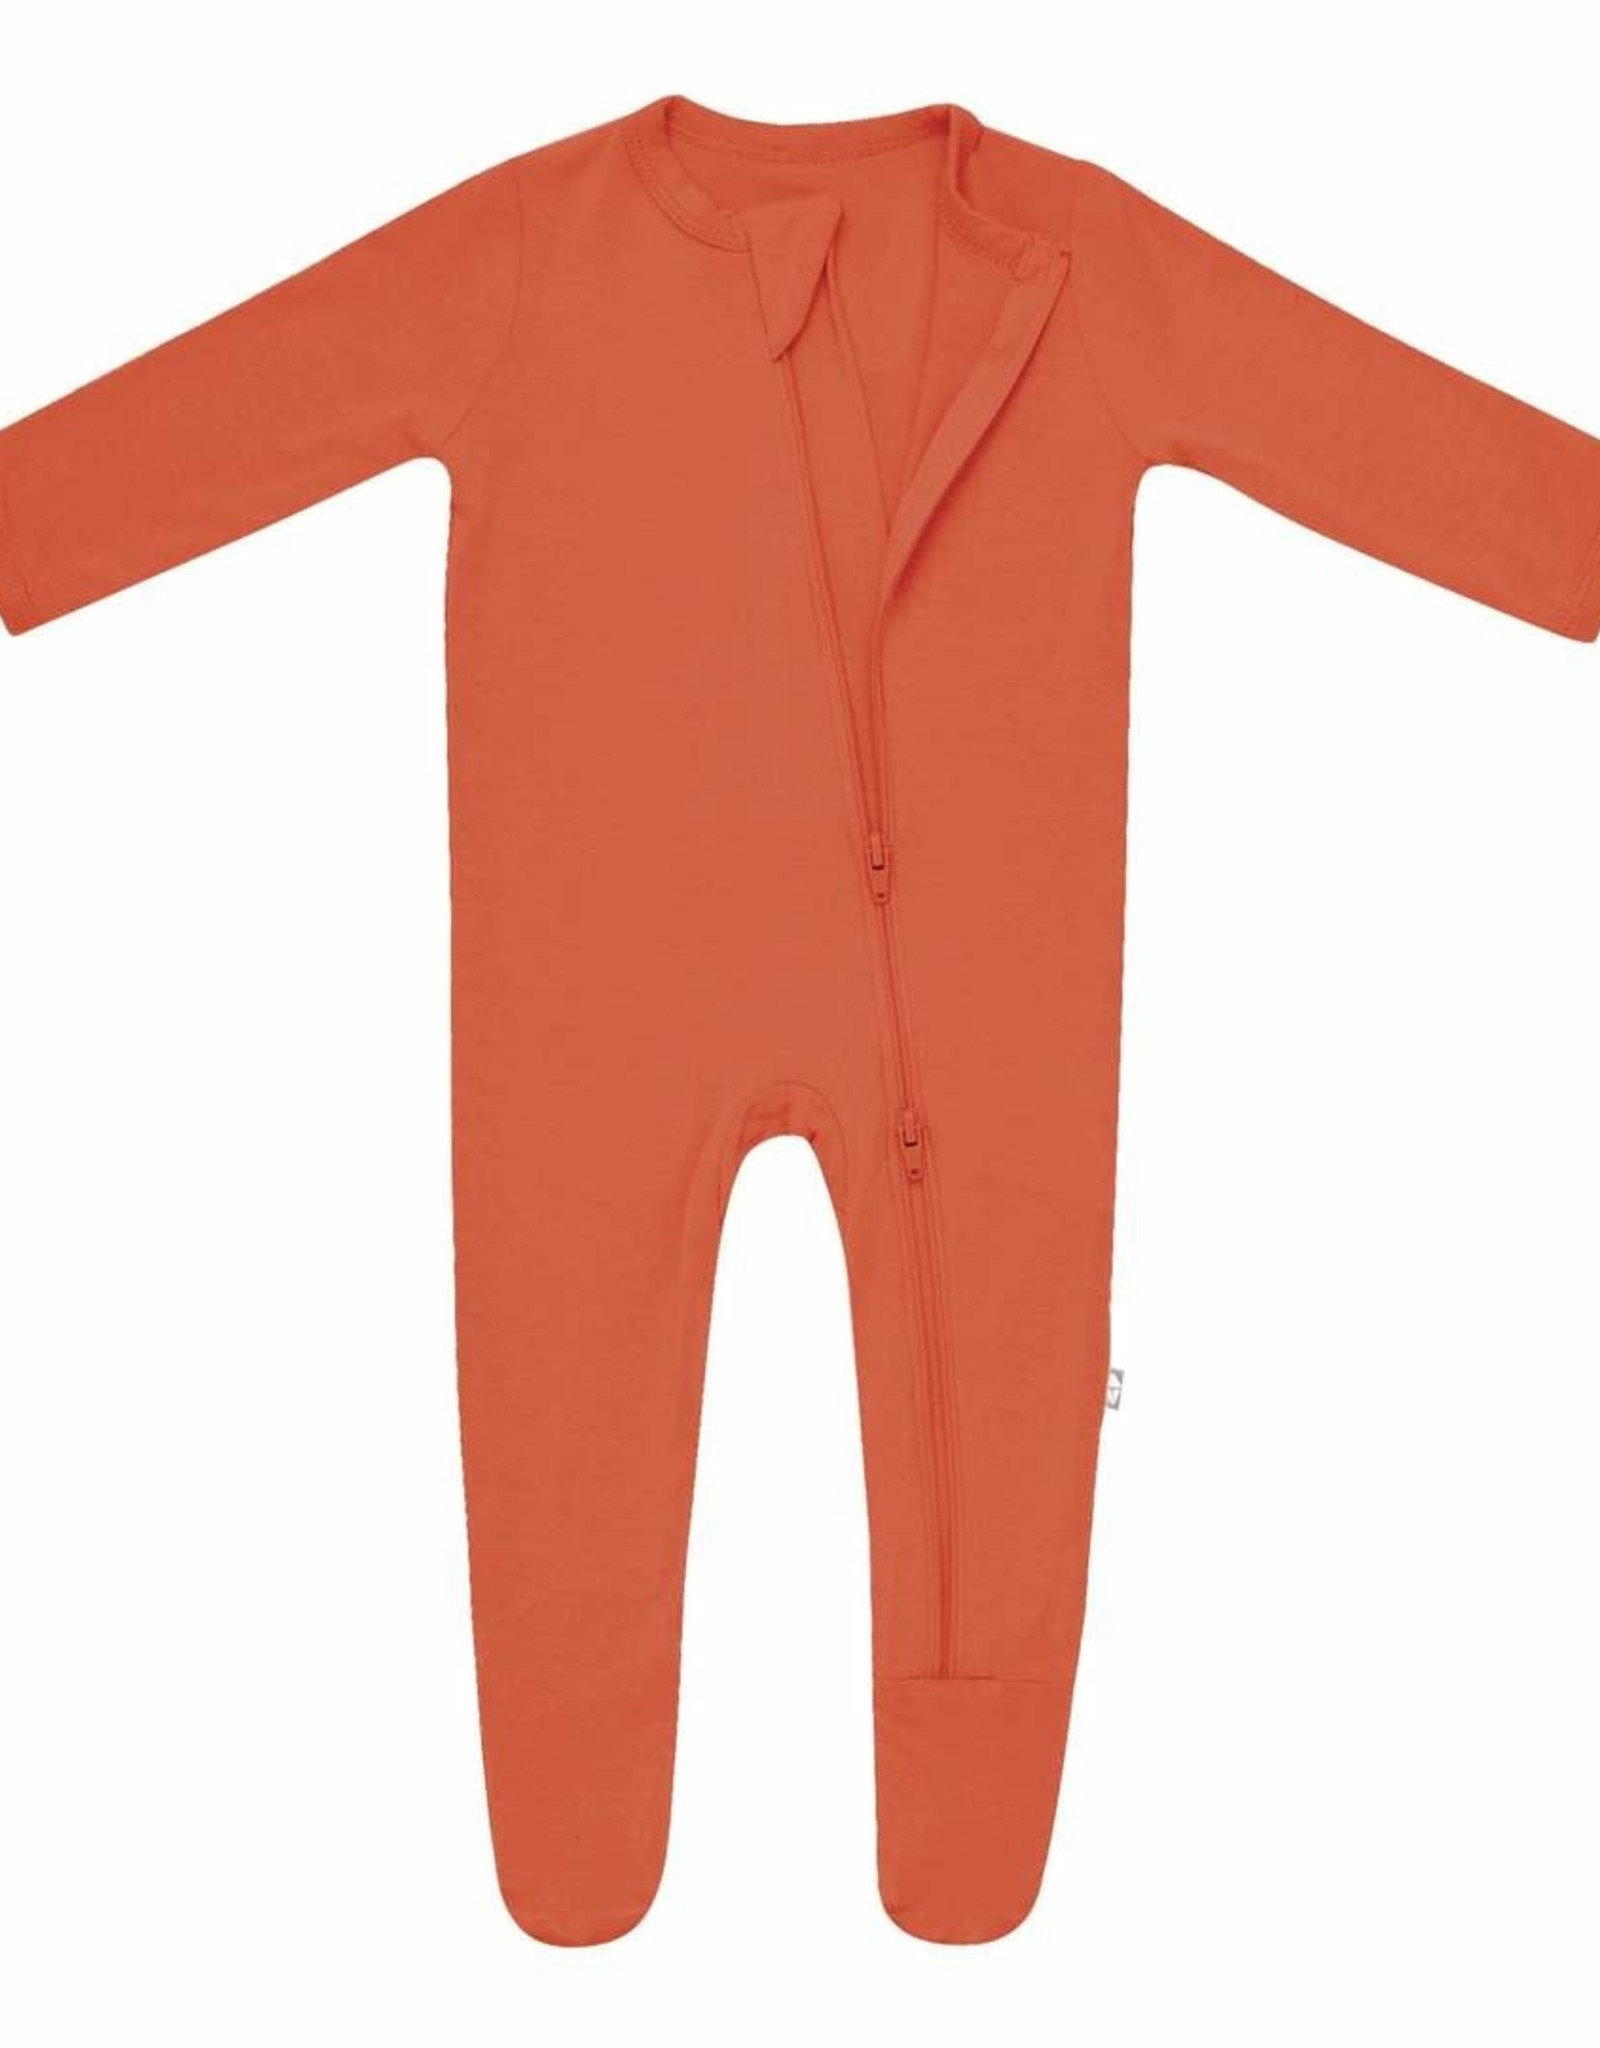 Kyte Baby zippered footie- clementine